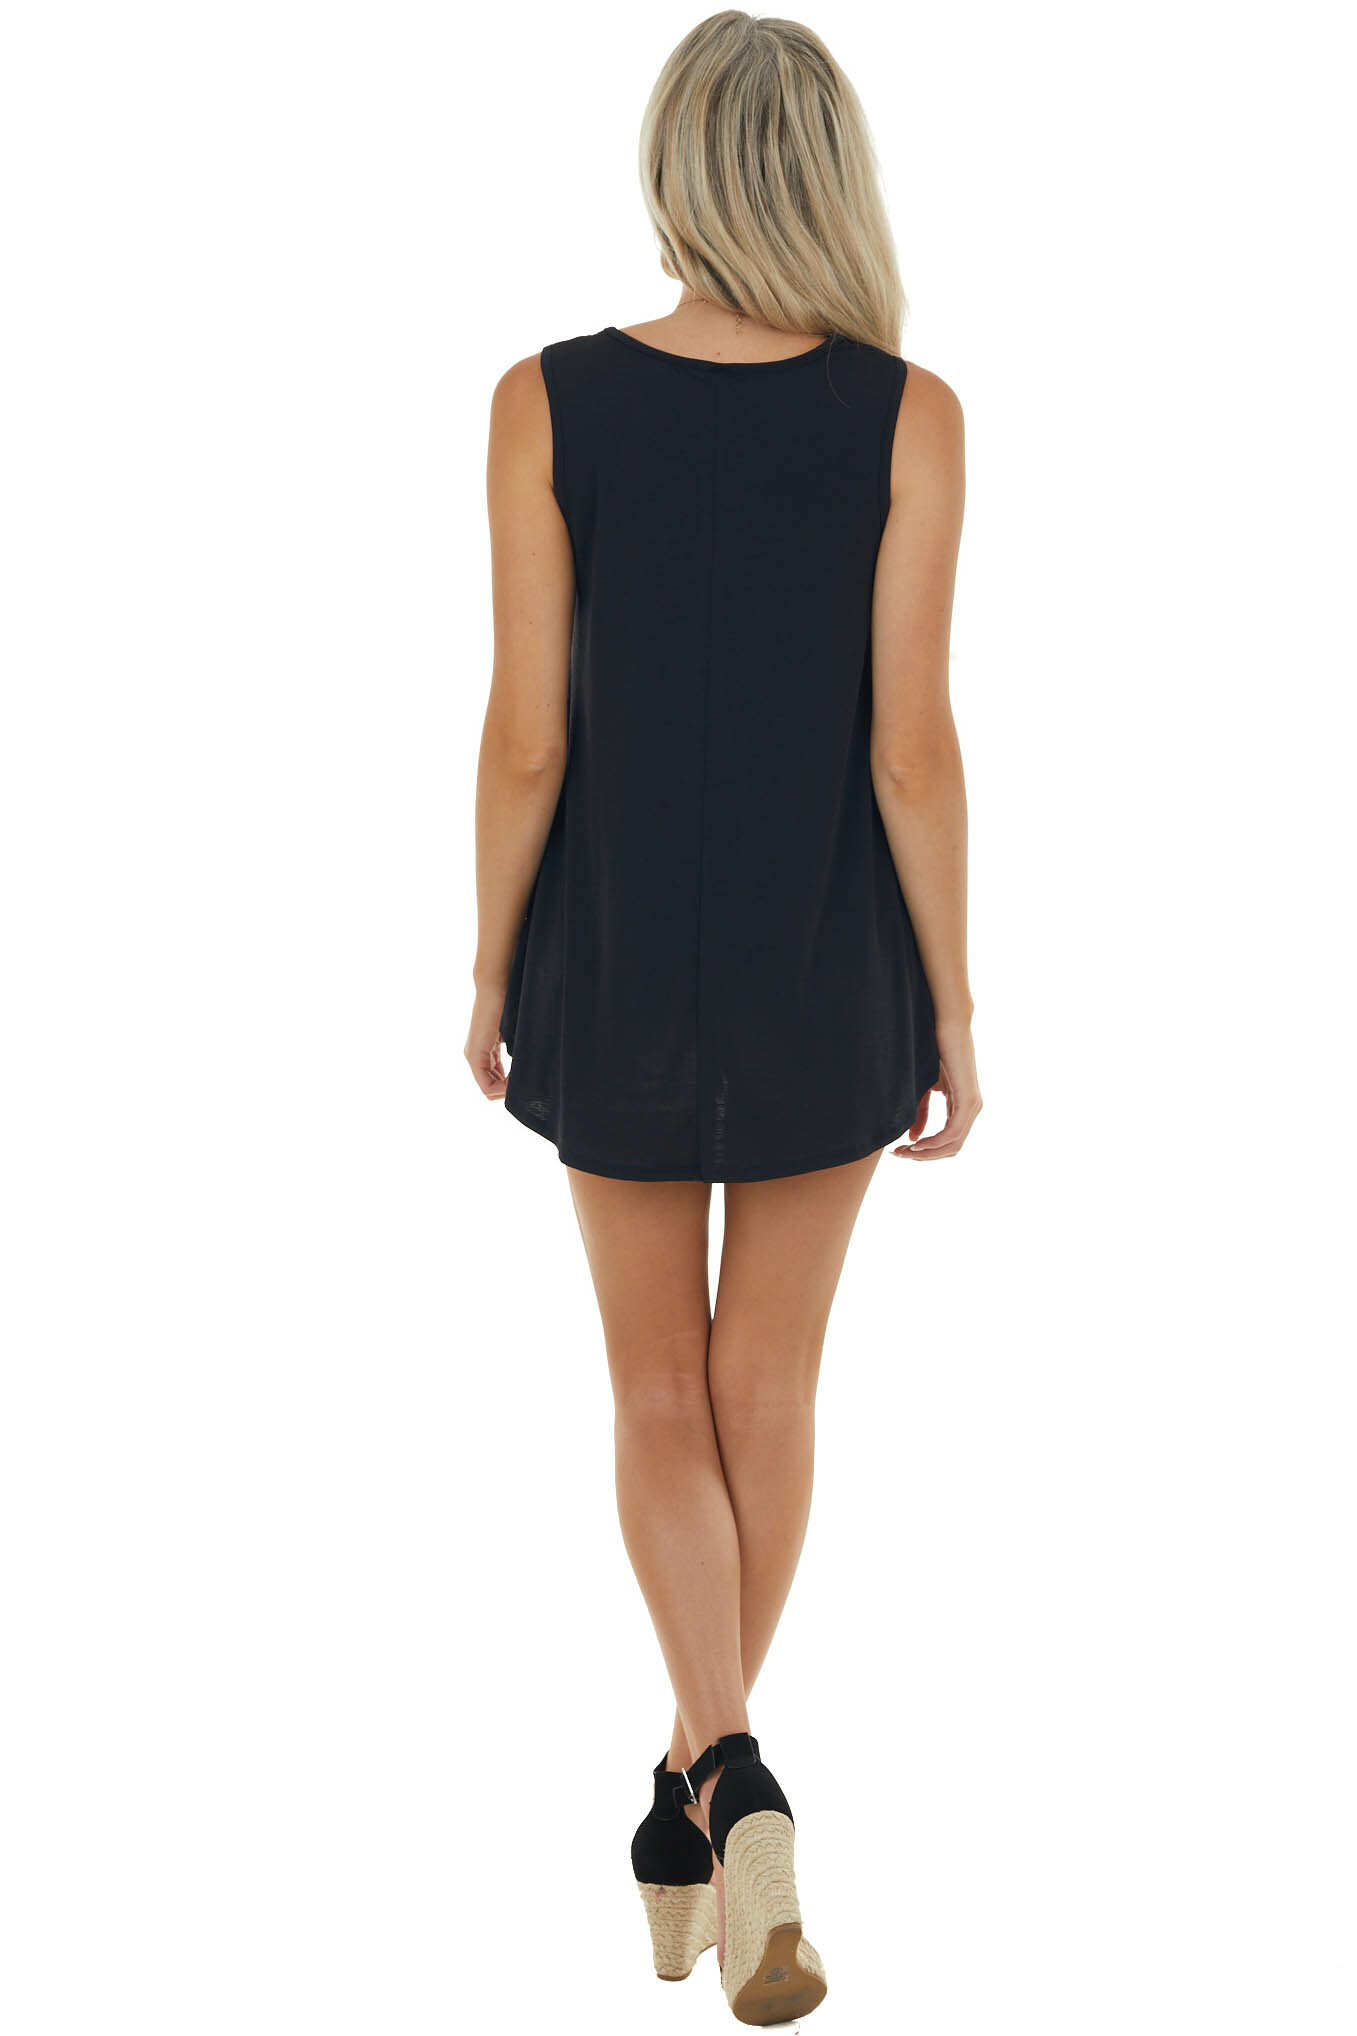 Black Textured A Line Stretchy Knit Tank Top